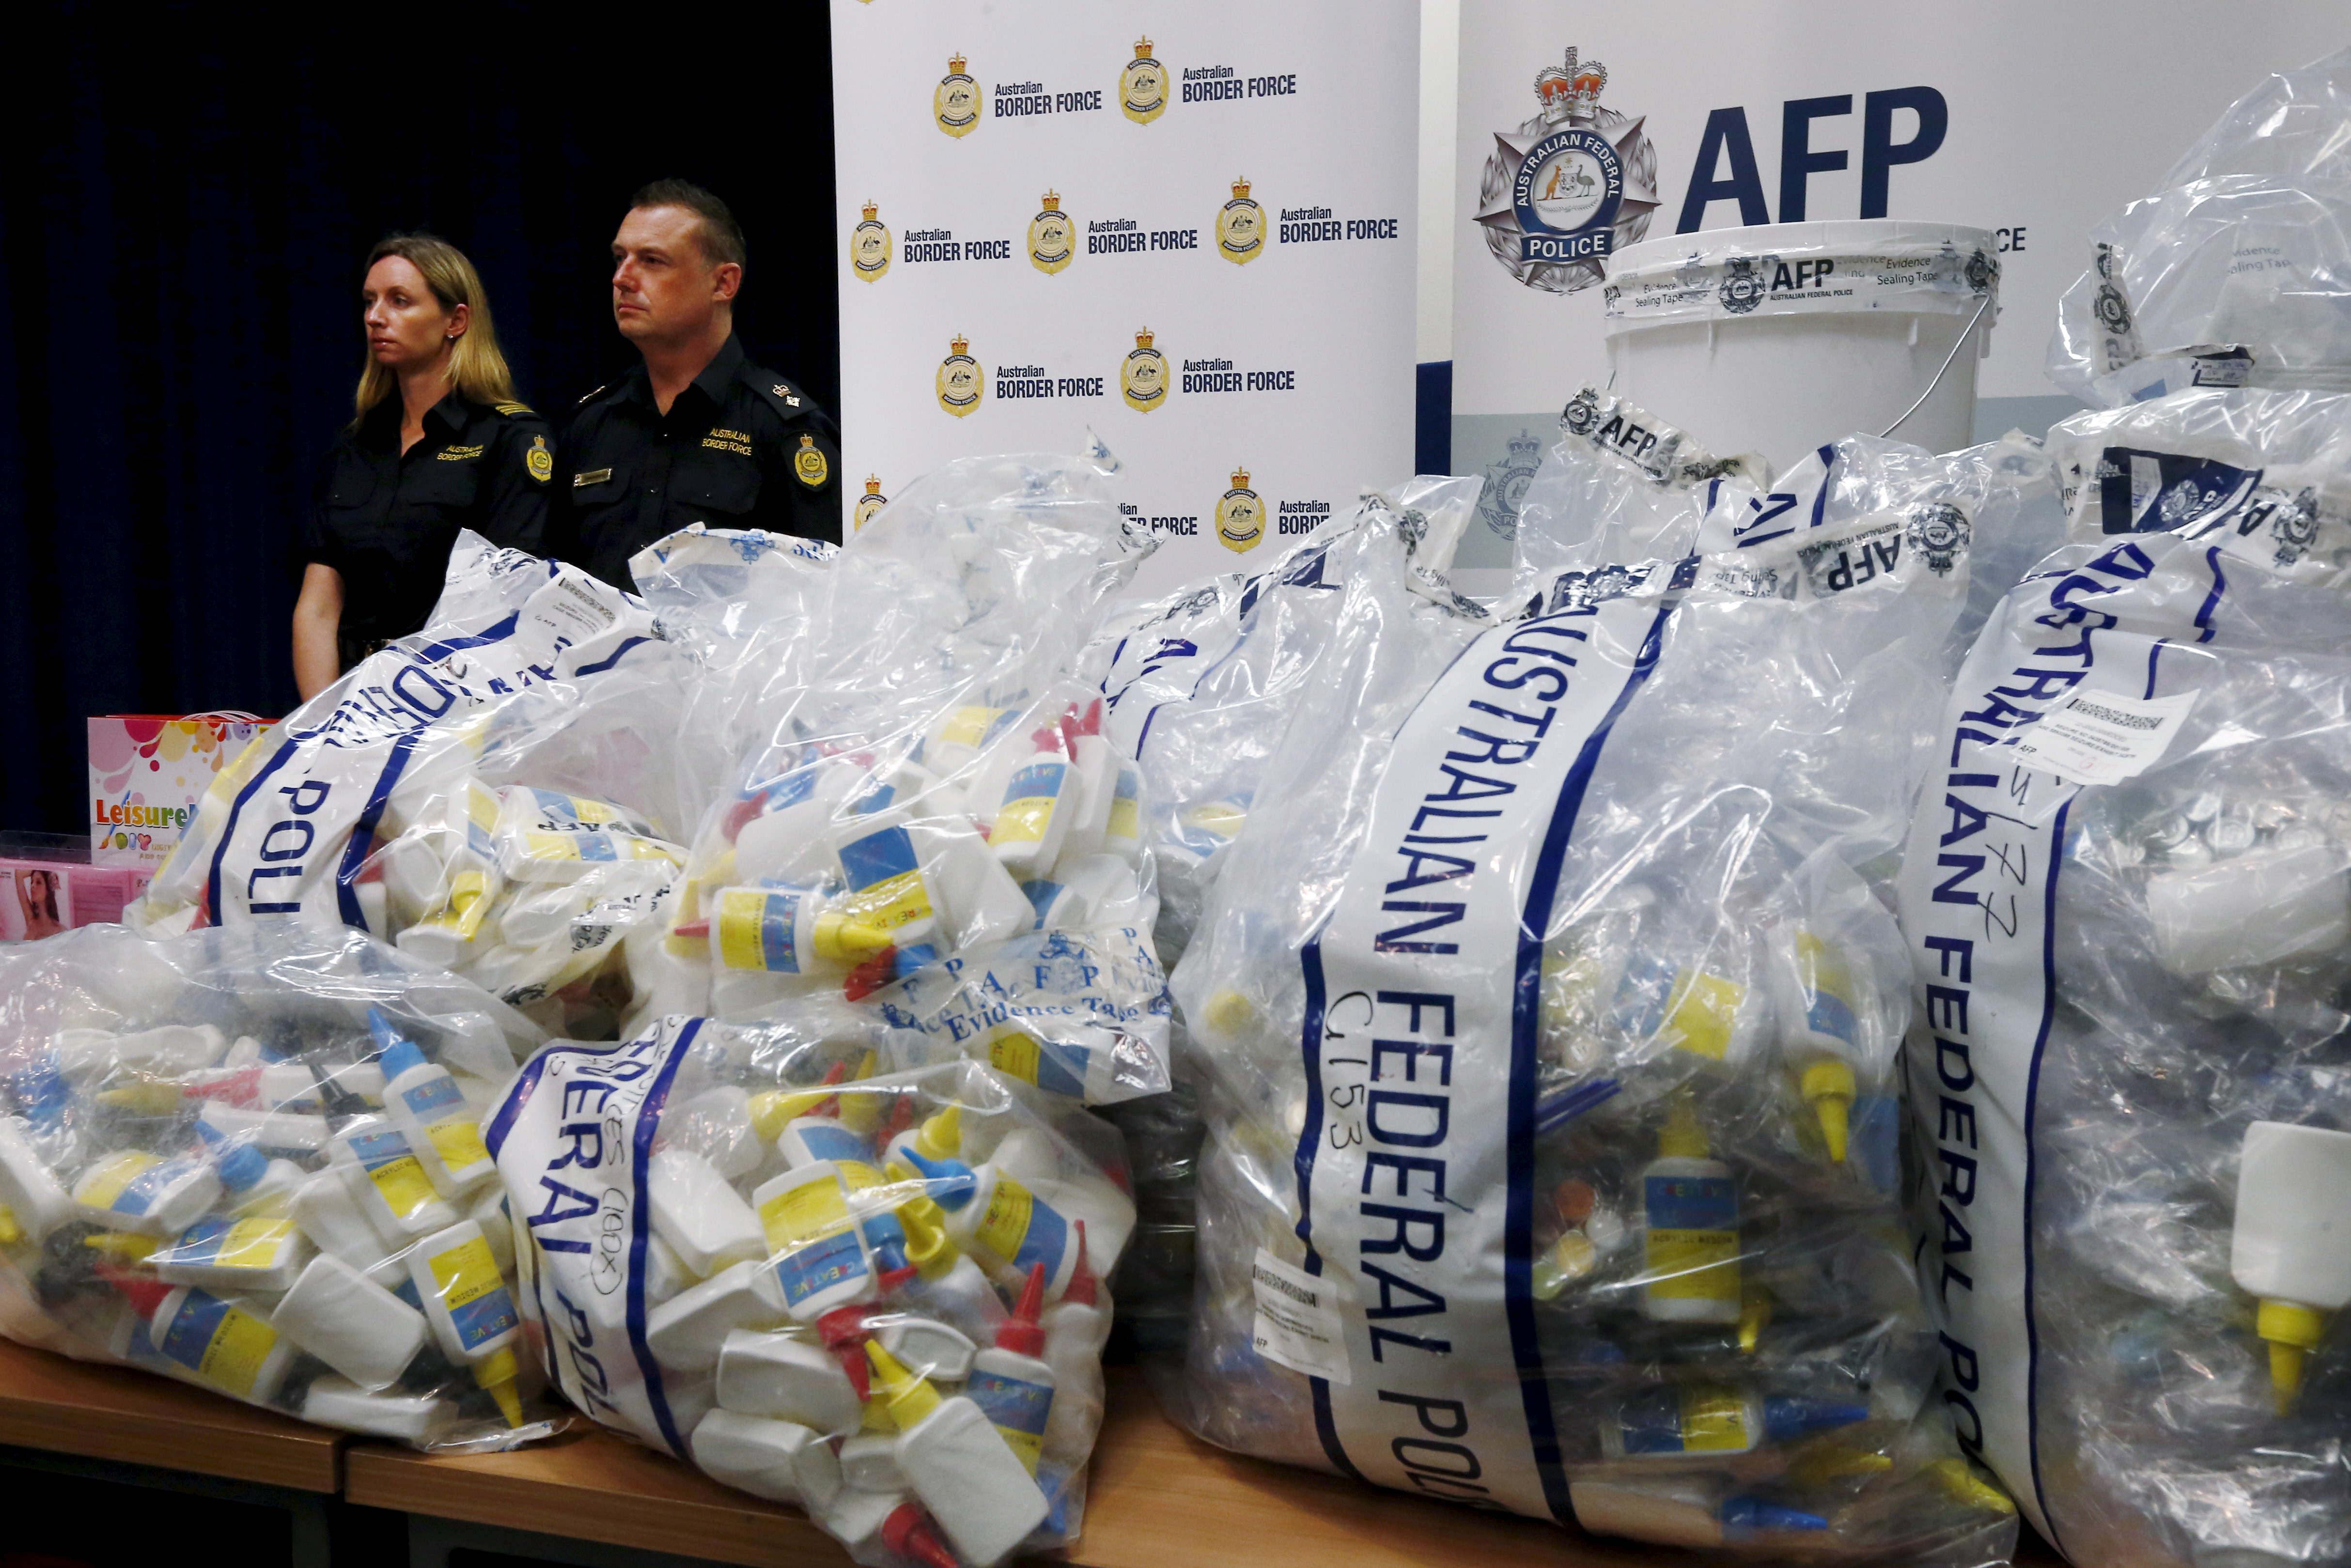 A quantity of liquid methamphetamine disguised in various packaging is put on display by Australian Border Force officers at the Australian Federal Police headquarters in Sydney on Feb. 15, 2016